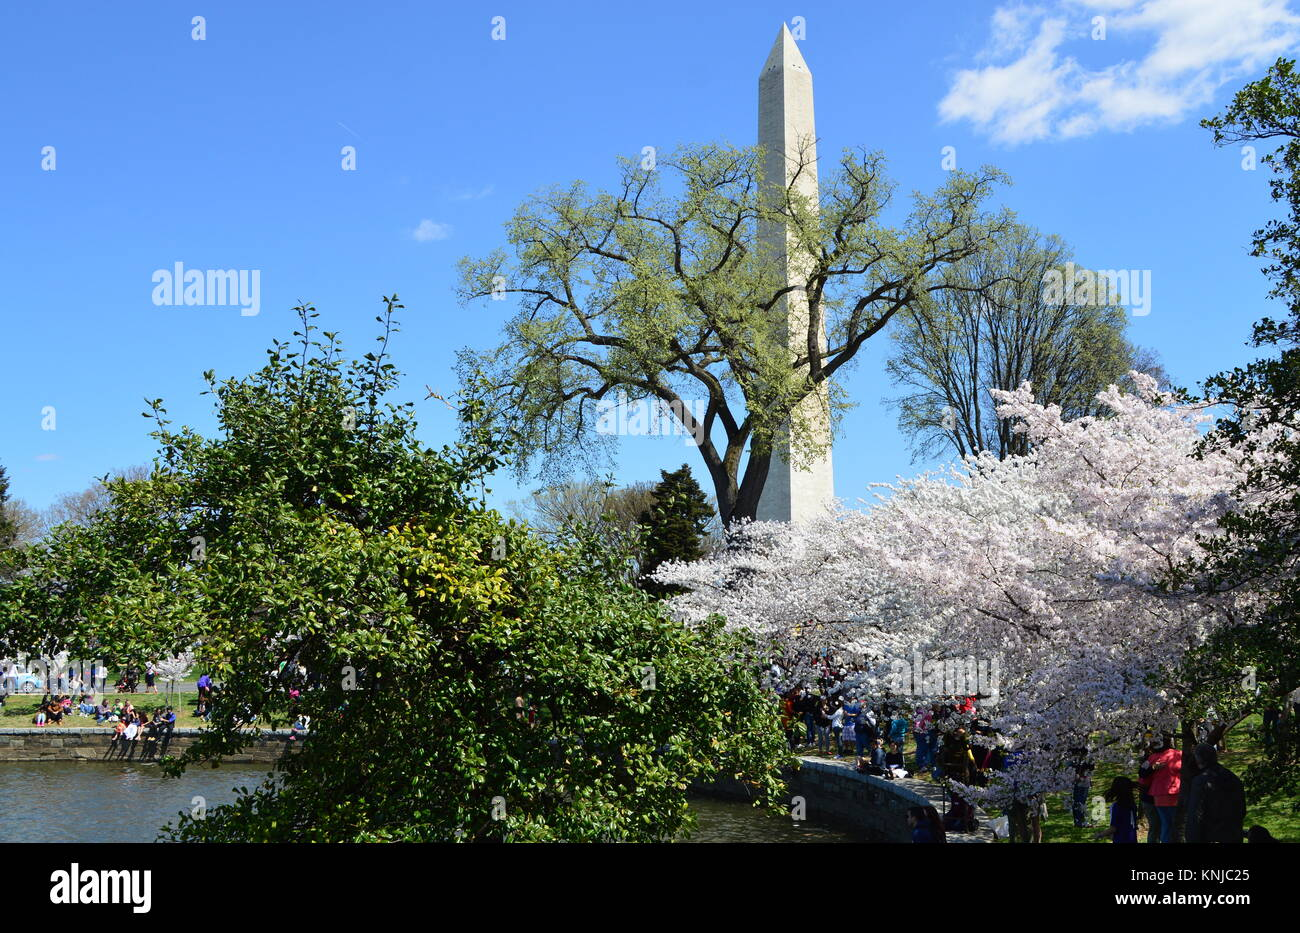 Washignton DC, Columbia, USA - April 11, 2015: The cherry trees in full bloom and the Washington Monument - Stock Image